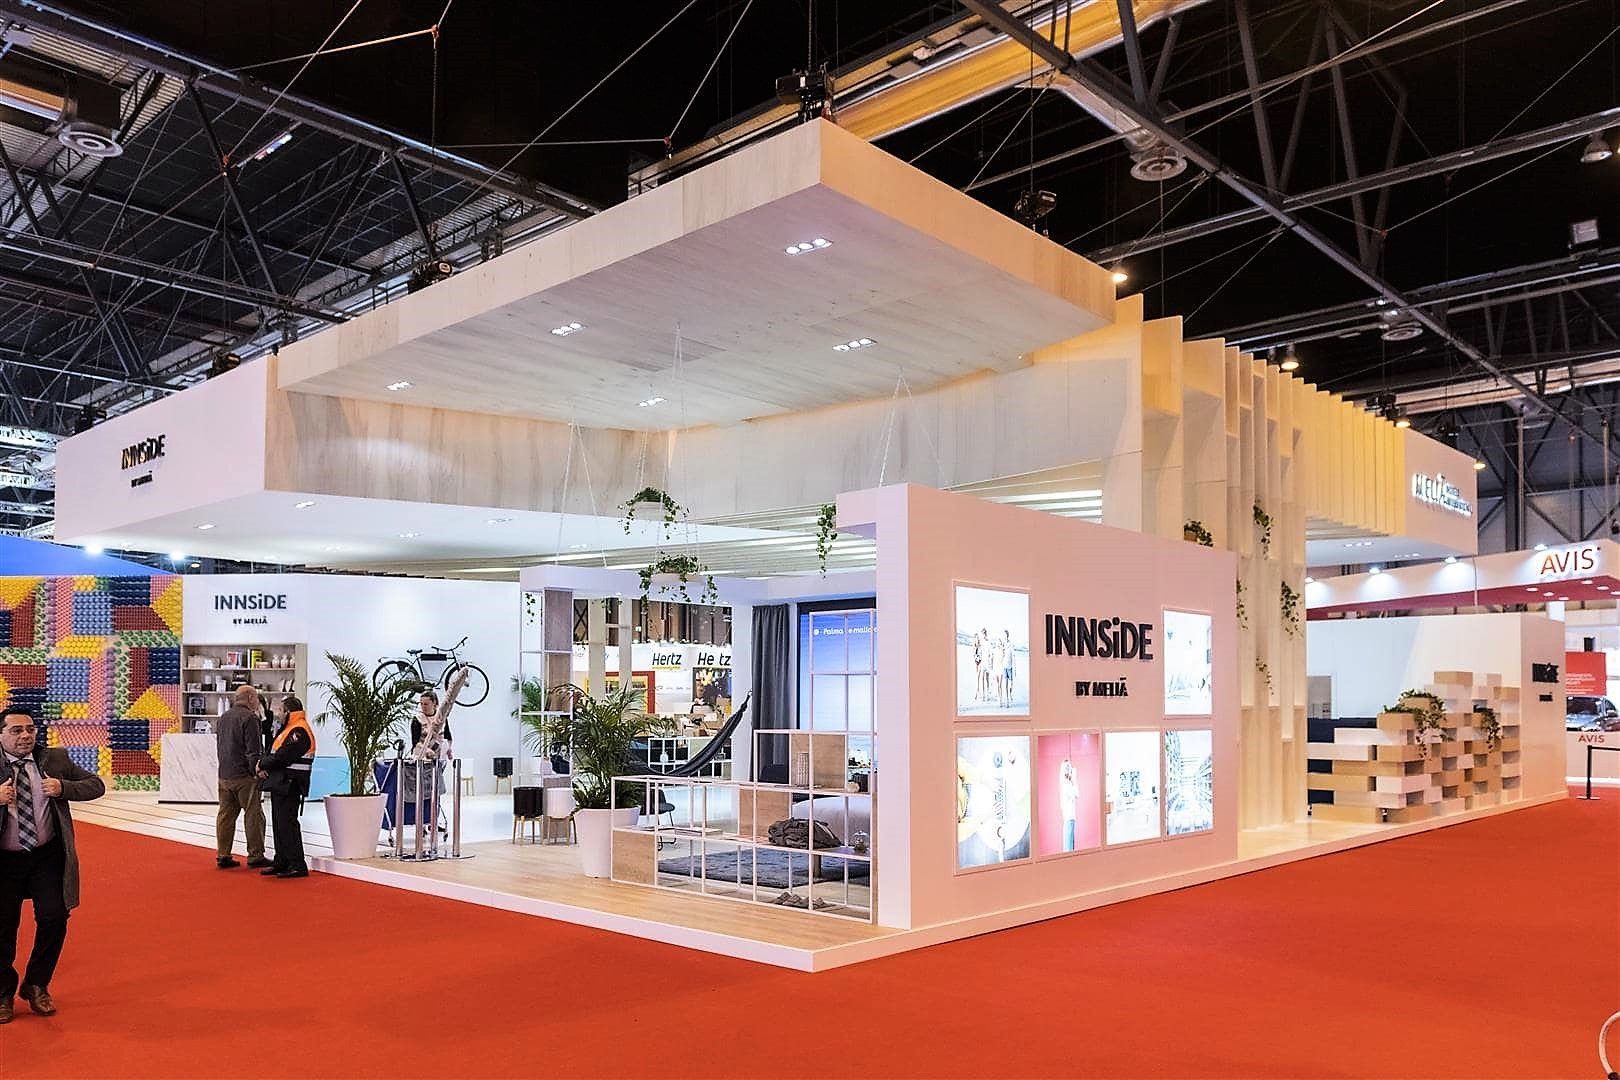 Design and construction of the INNSiDE by Meliá stand in Fitur 2019.